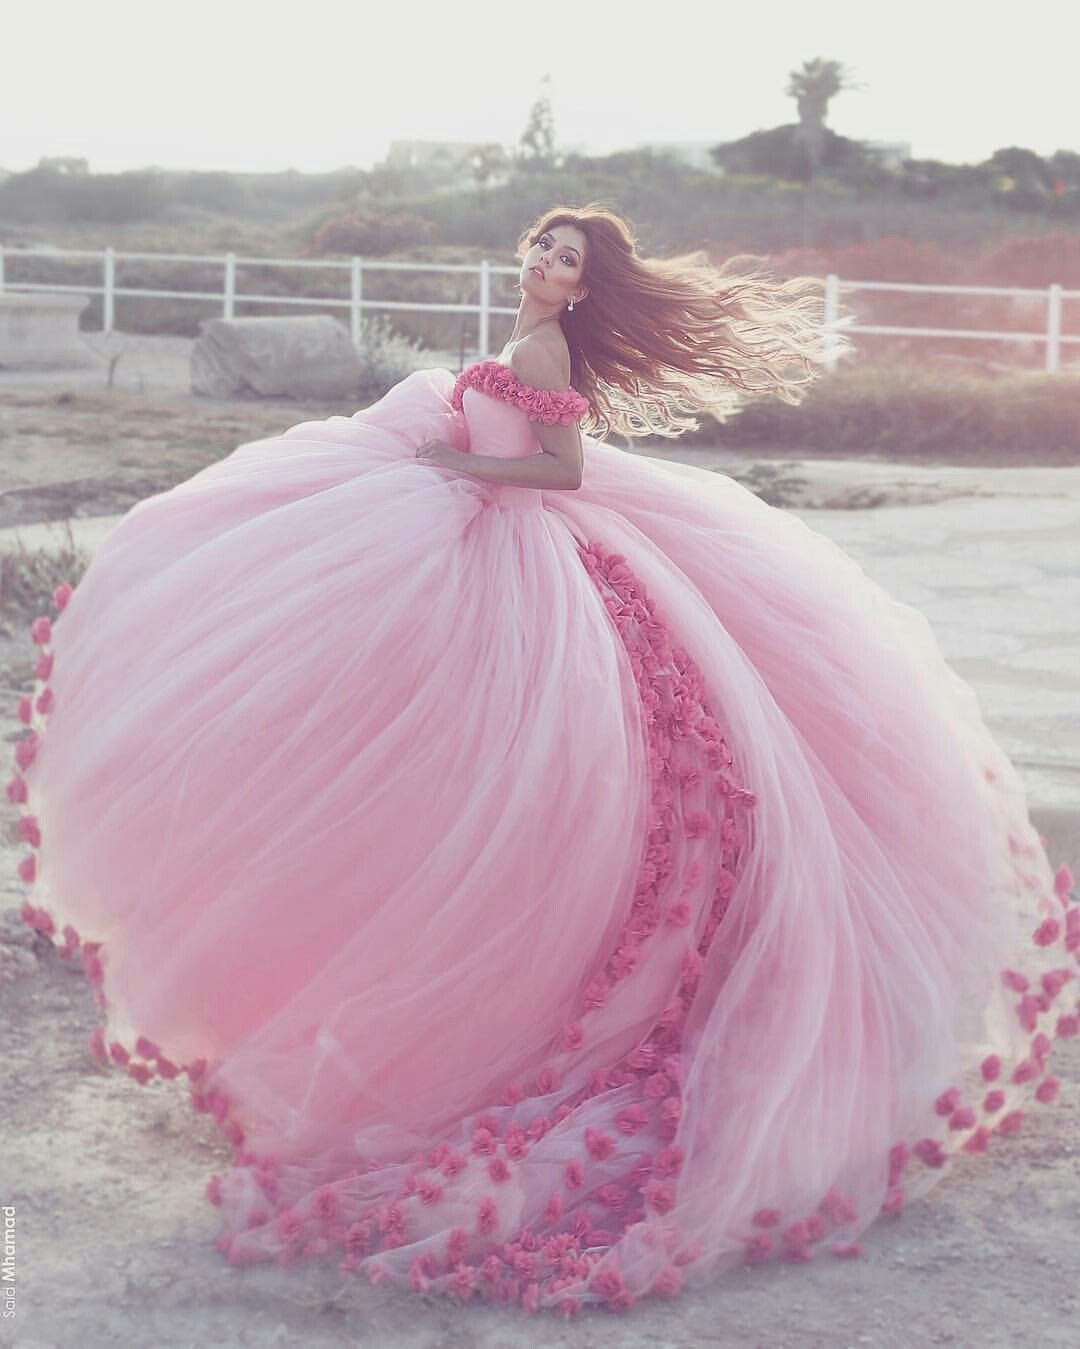 Pin by Sajida lillah on fashion | Pinterest | Gowns, Barbie bridal ...